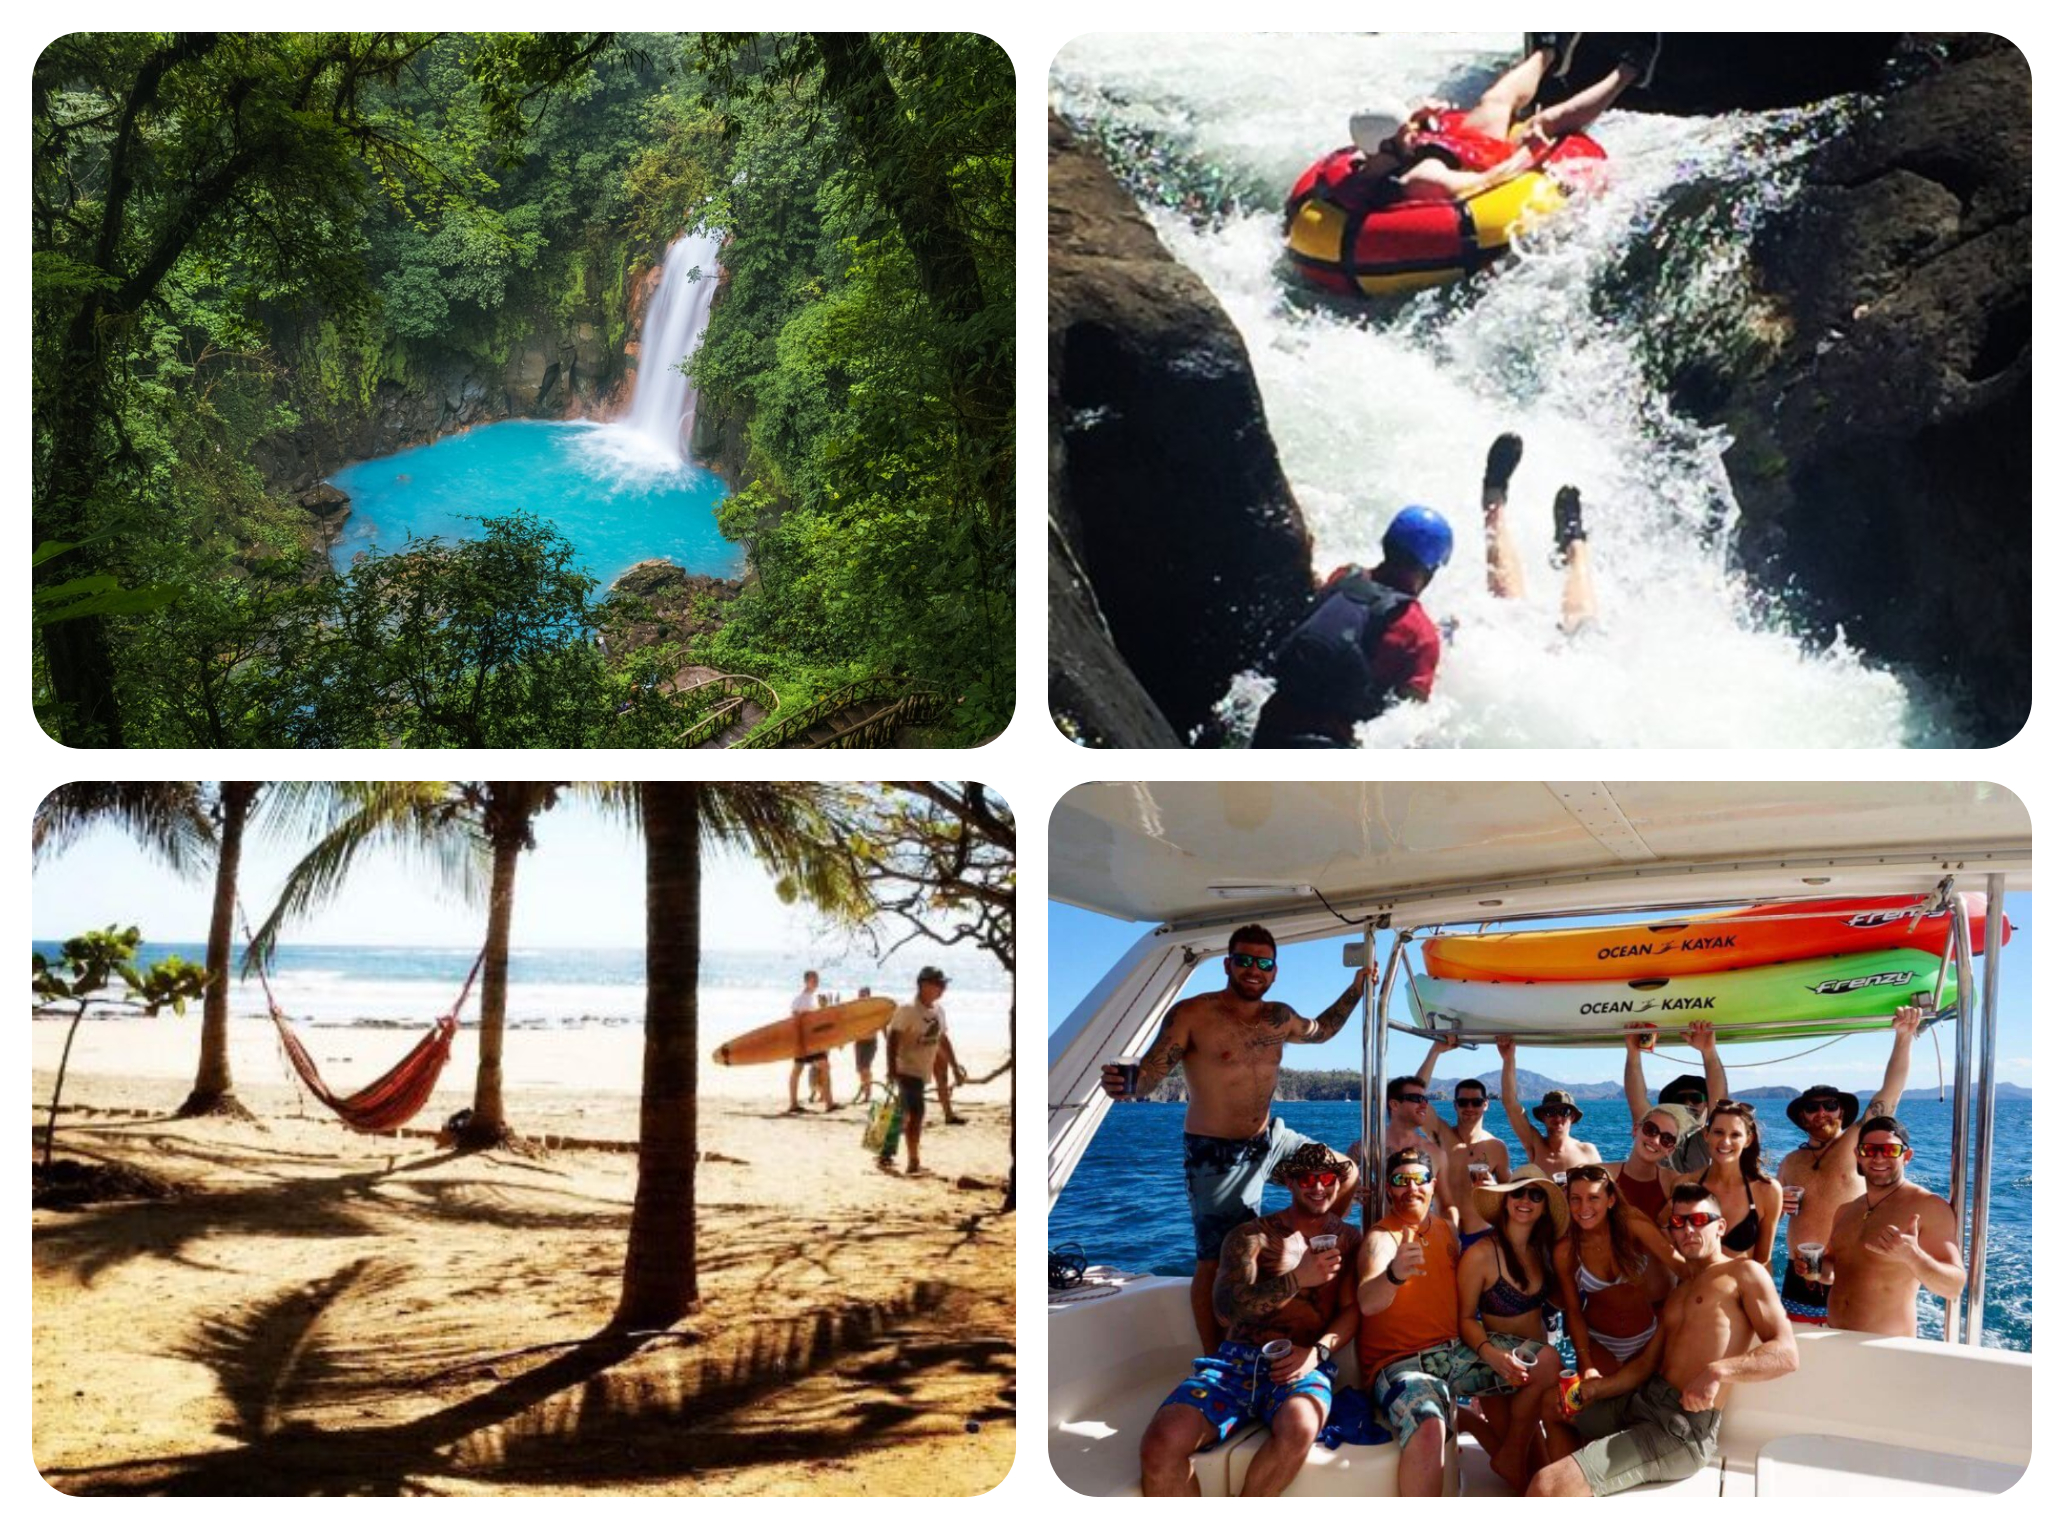 Blue Crab Water Adventures Tours Adventure Tour Company Province Of Guanacaste Costa Rica Travel Hospitality Awards